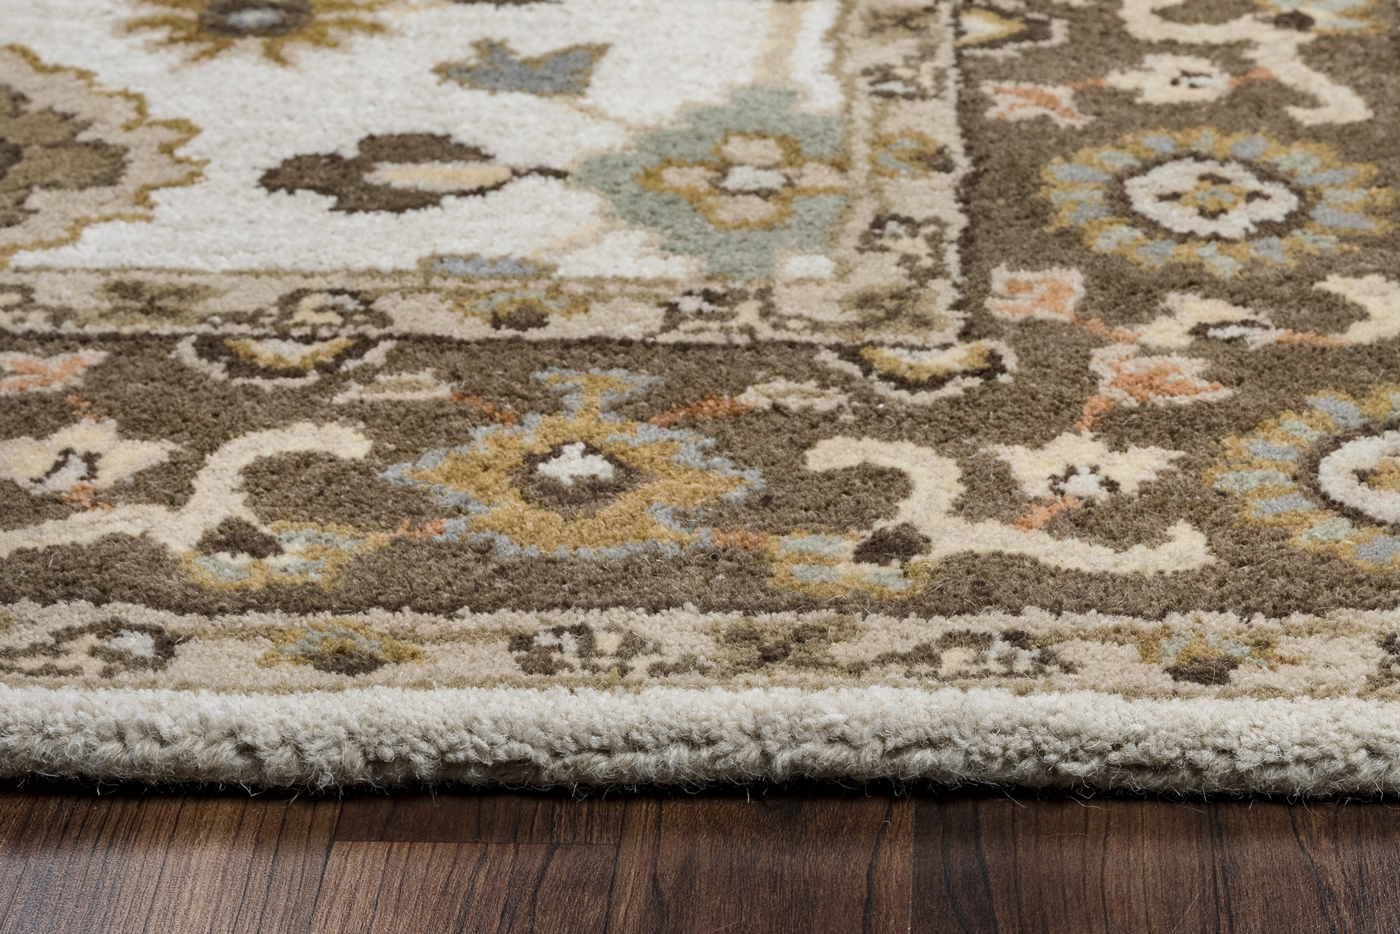 Valintino Bordered Floral Wool Area Rug In Gray Tan Sage